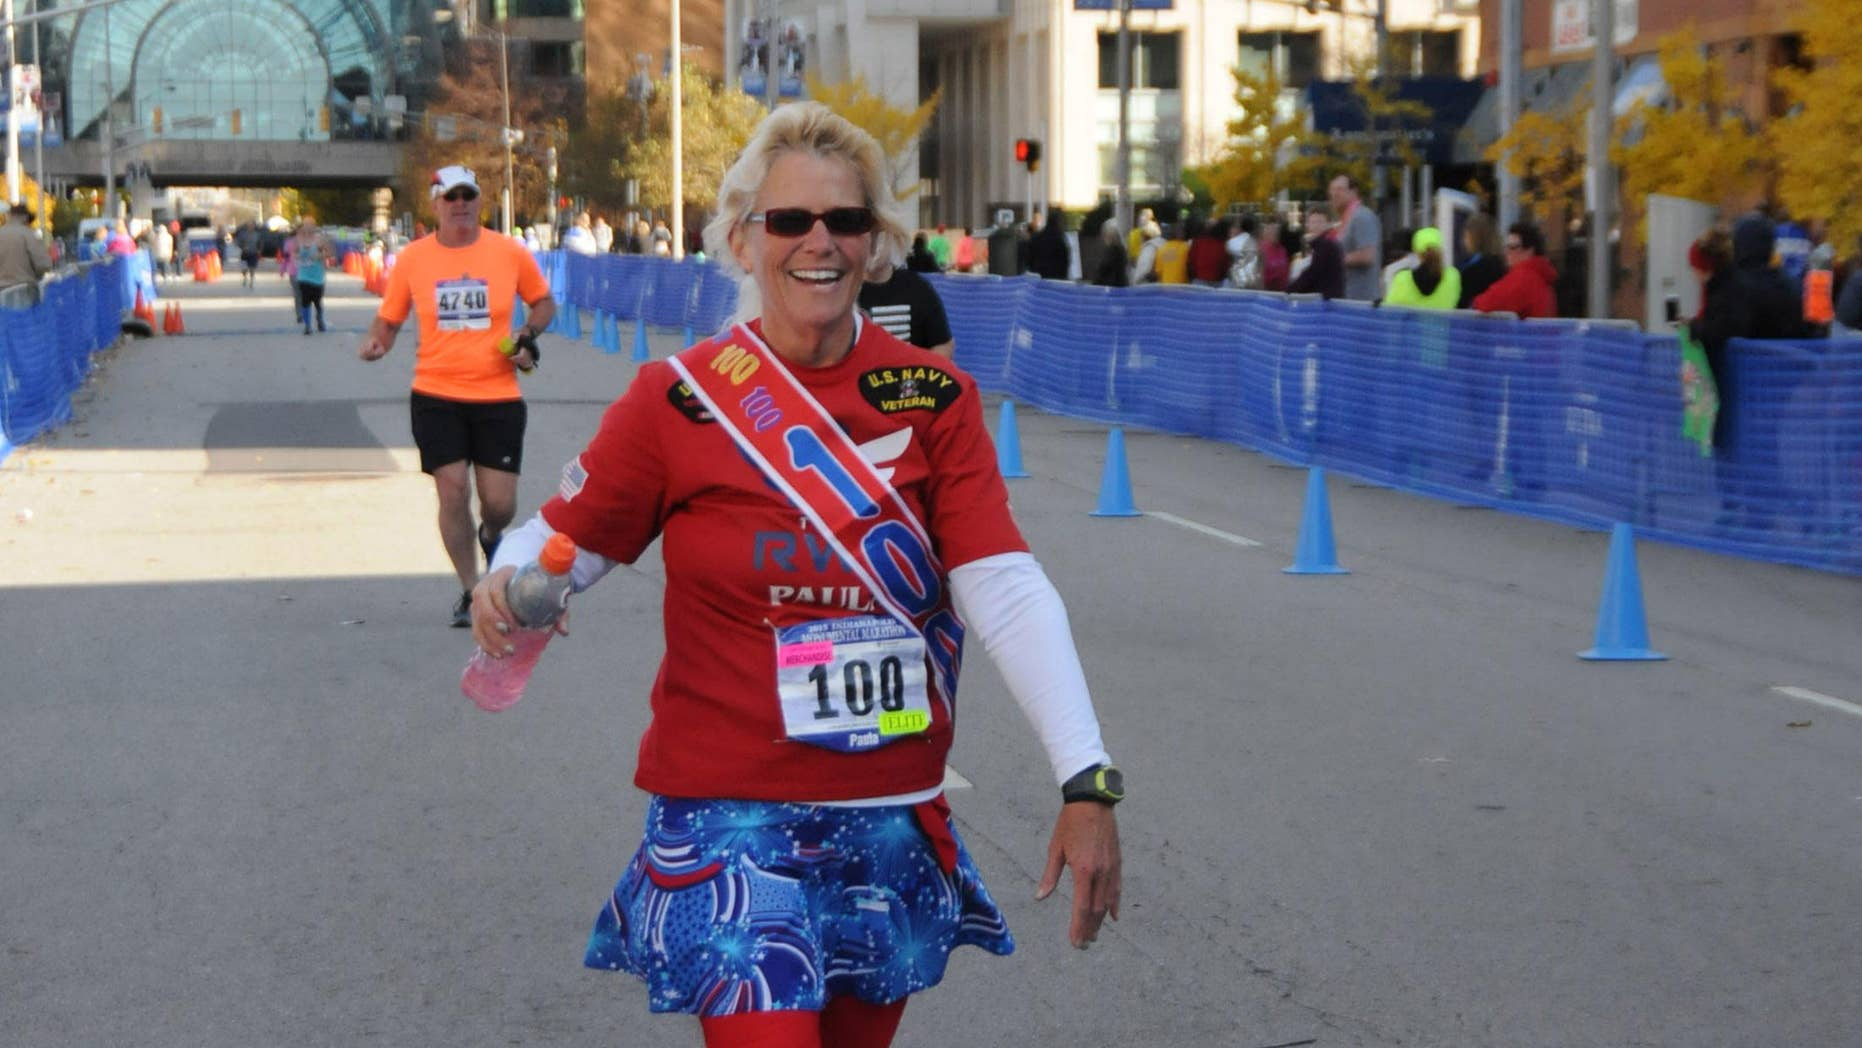 Paula Steinbach is recognized at the finish of the Monumental Marathon in Indianapolis, her 100th race at the distance.